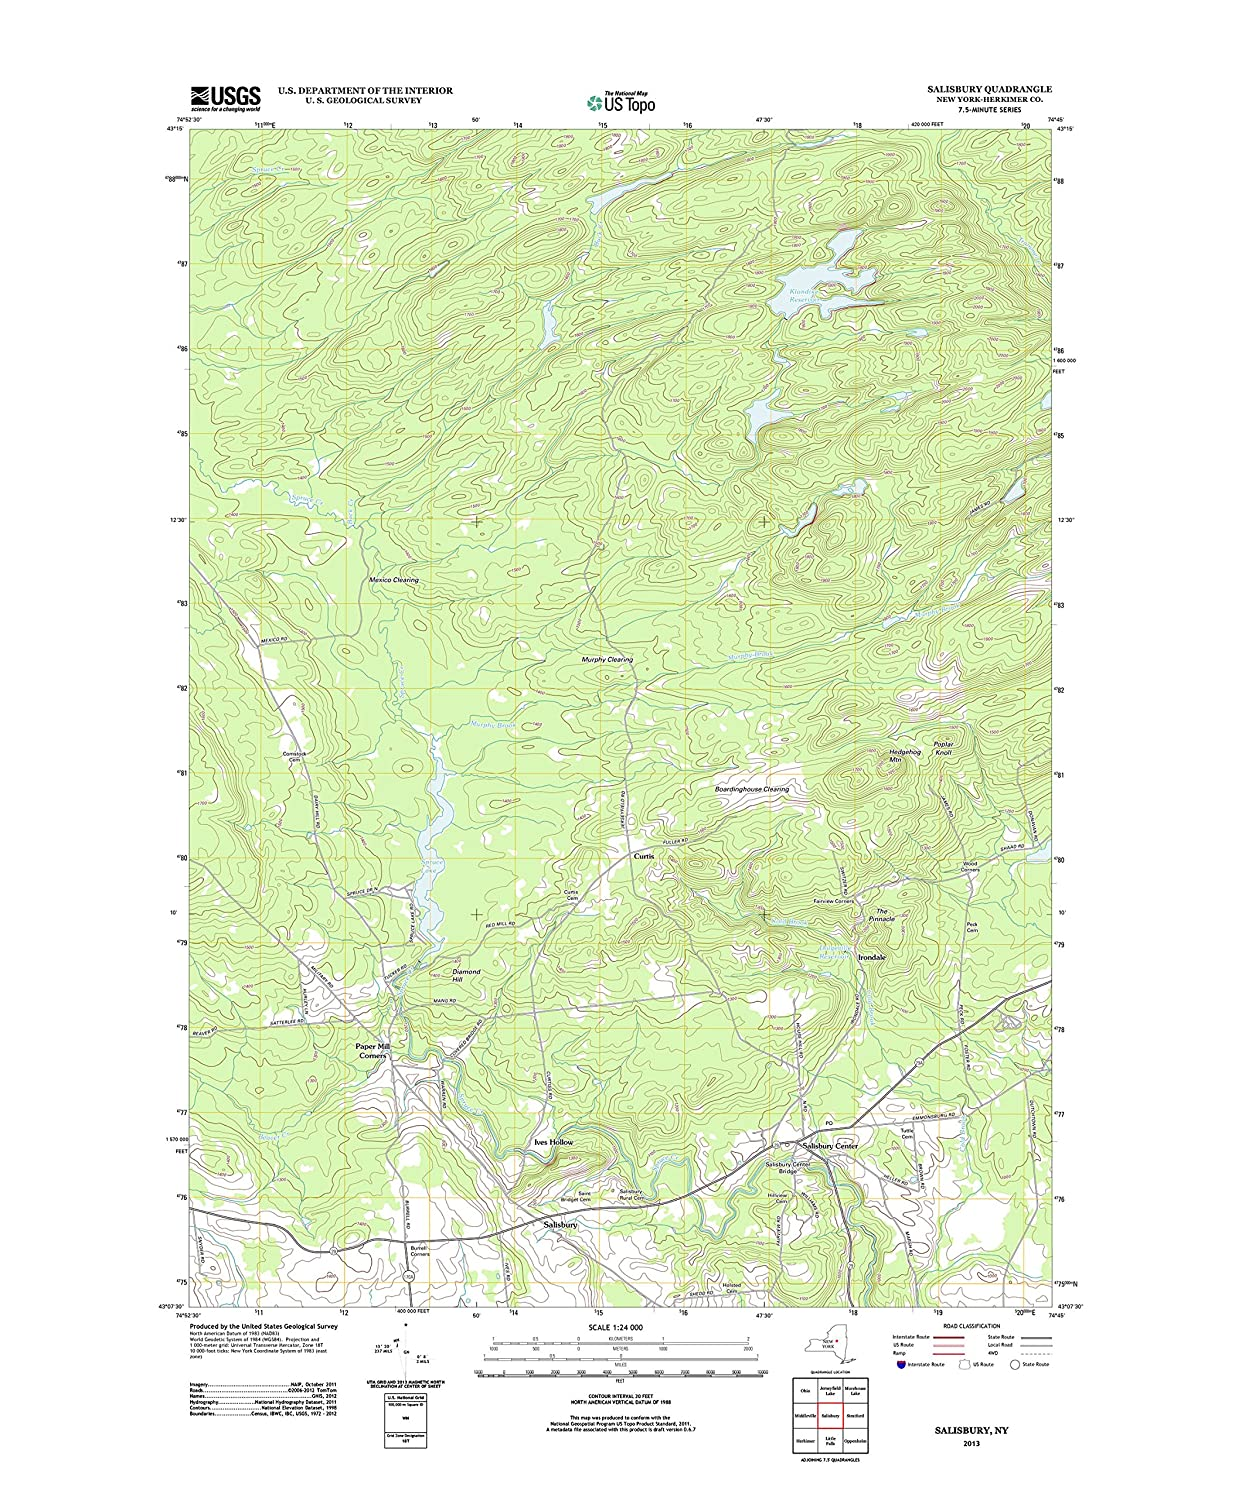 Amazon.com: Topographic Map Poster - Salisbury, NY TNM ... on new york state wind map, new york state supreme court building, ny state elevation map, new york state plat, new york state poverty map, new york state map printable, new york state satellite map, new york state utility map, new york state pipeline map, mountains of new york map, new york state transit map, new york state aquifer map, new york state and vermont border map, wa state topographic map, new york state climate map, northern district of iowa map, new york state license plates, new york state county map, new york state map large, new york state geologic map,